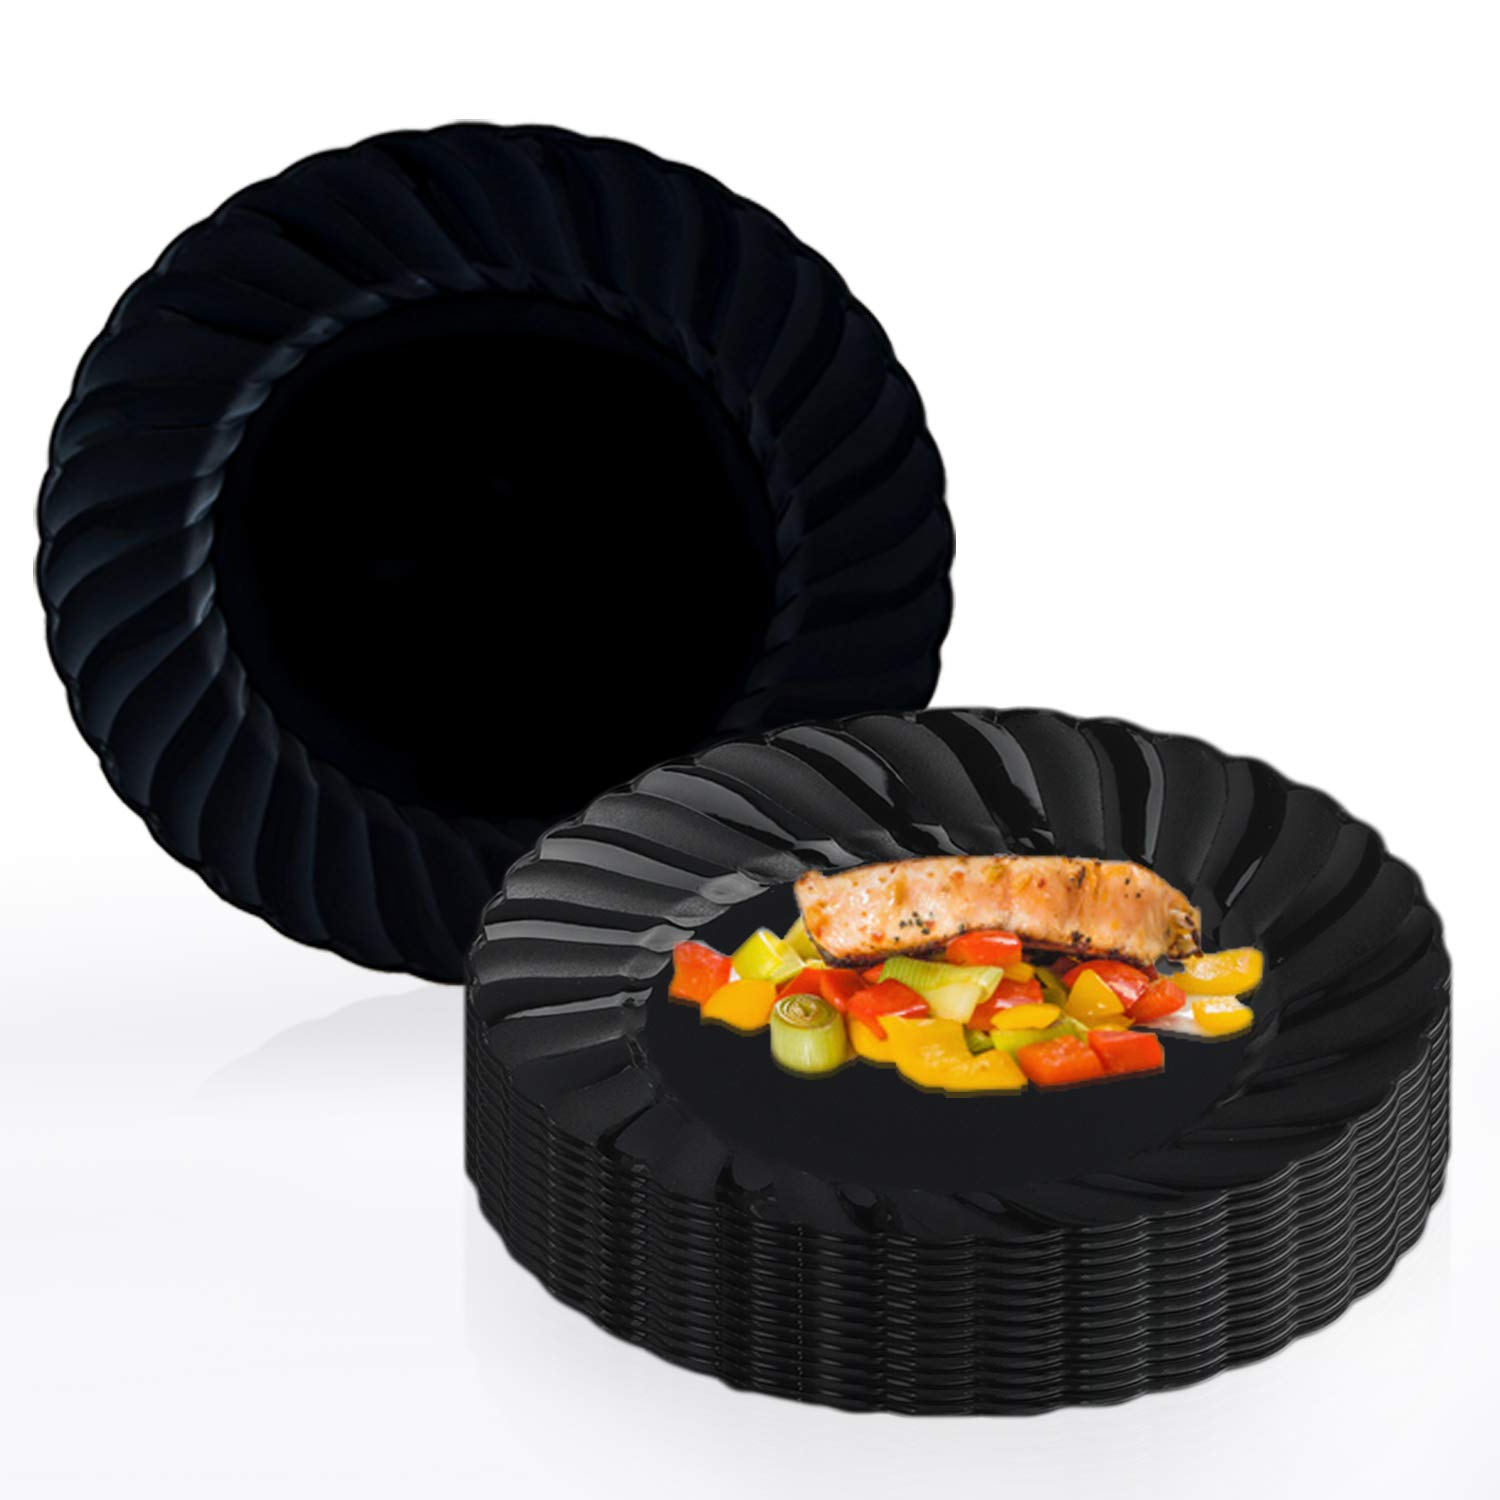 """Elegant Disposable Plastic Dessert Plates 180 Pcs - 7.5"""" Heavy Duty Flared Black Salad Plates - Reusable Fancy Appetizer Cake Plates - Bulk Party Supplies For Wedding, Easter, Birthday & All Occasions"""